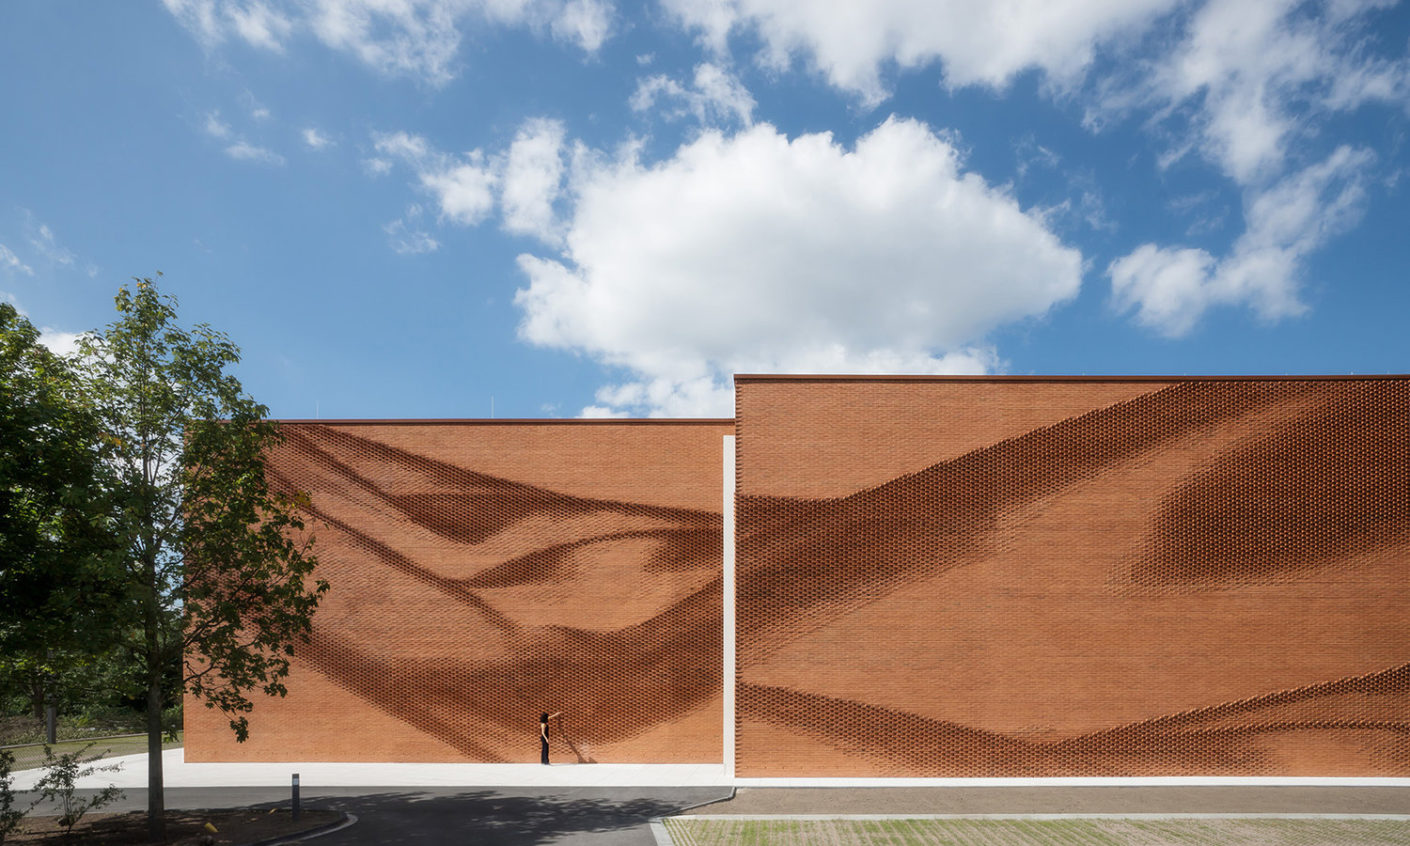 Administrative building with brick façade by behet bondzio lin architekten in Münster